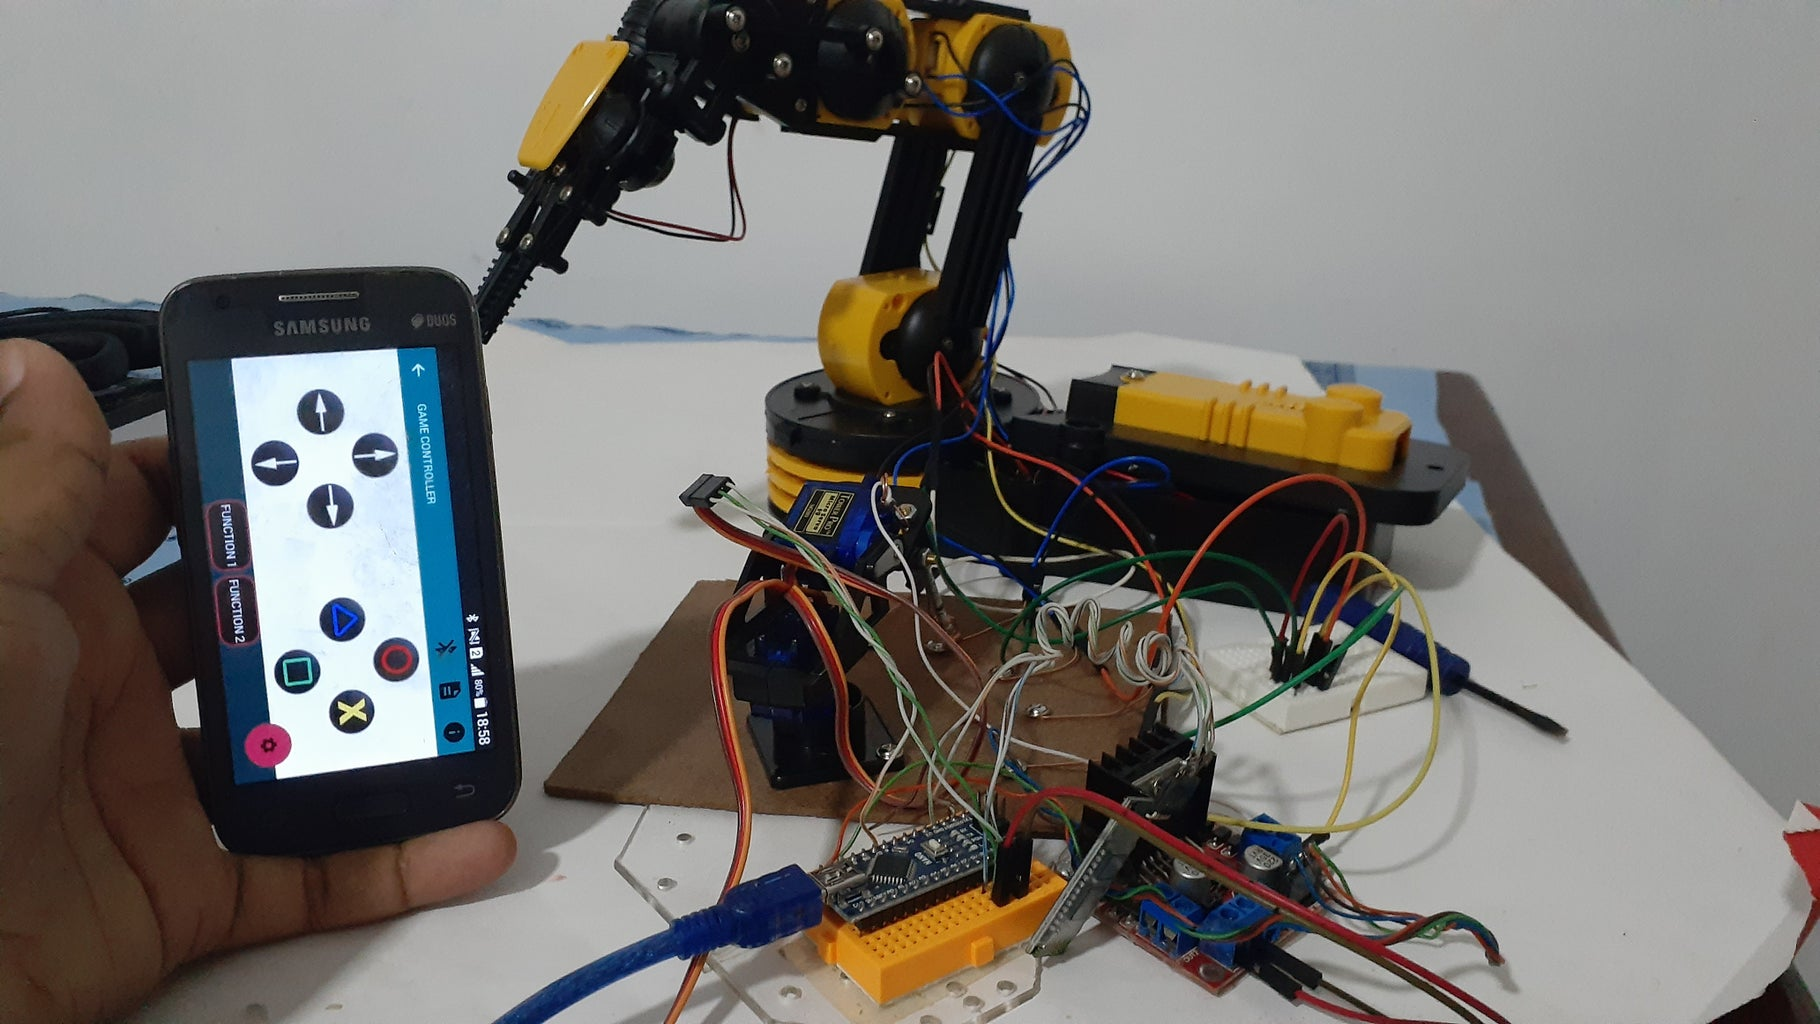 Code for Bluetooth Connection and Finalize the Project